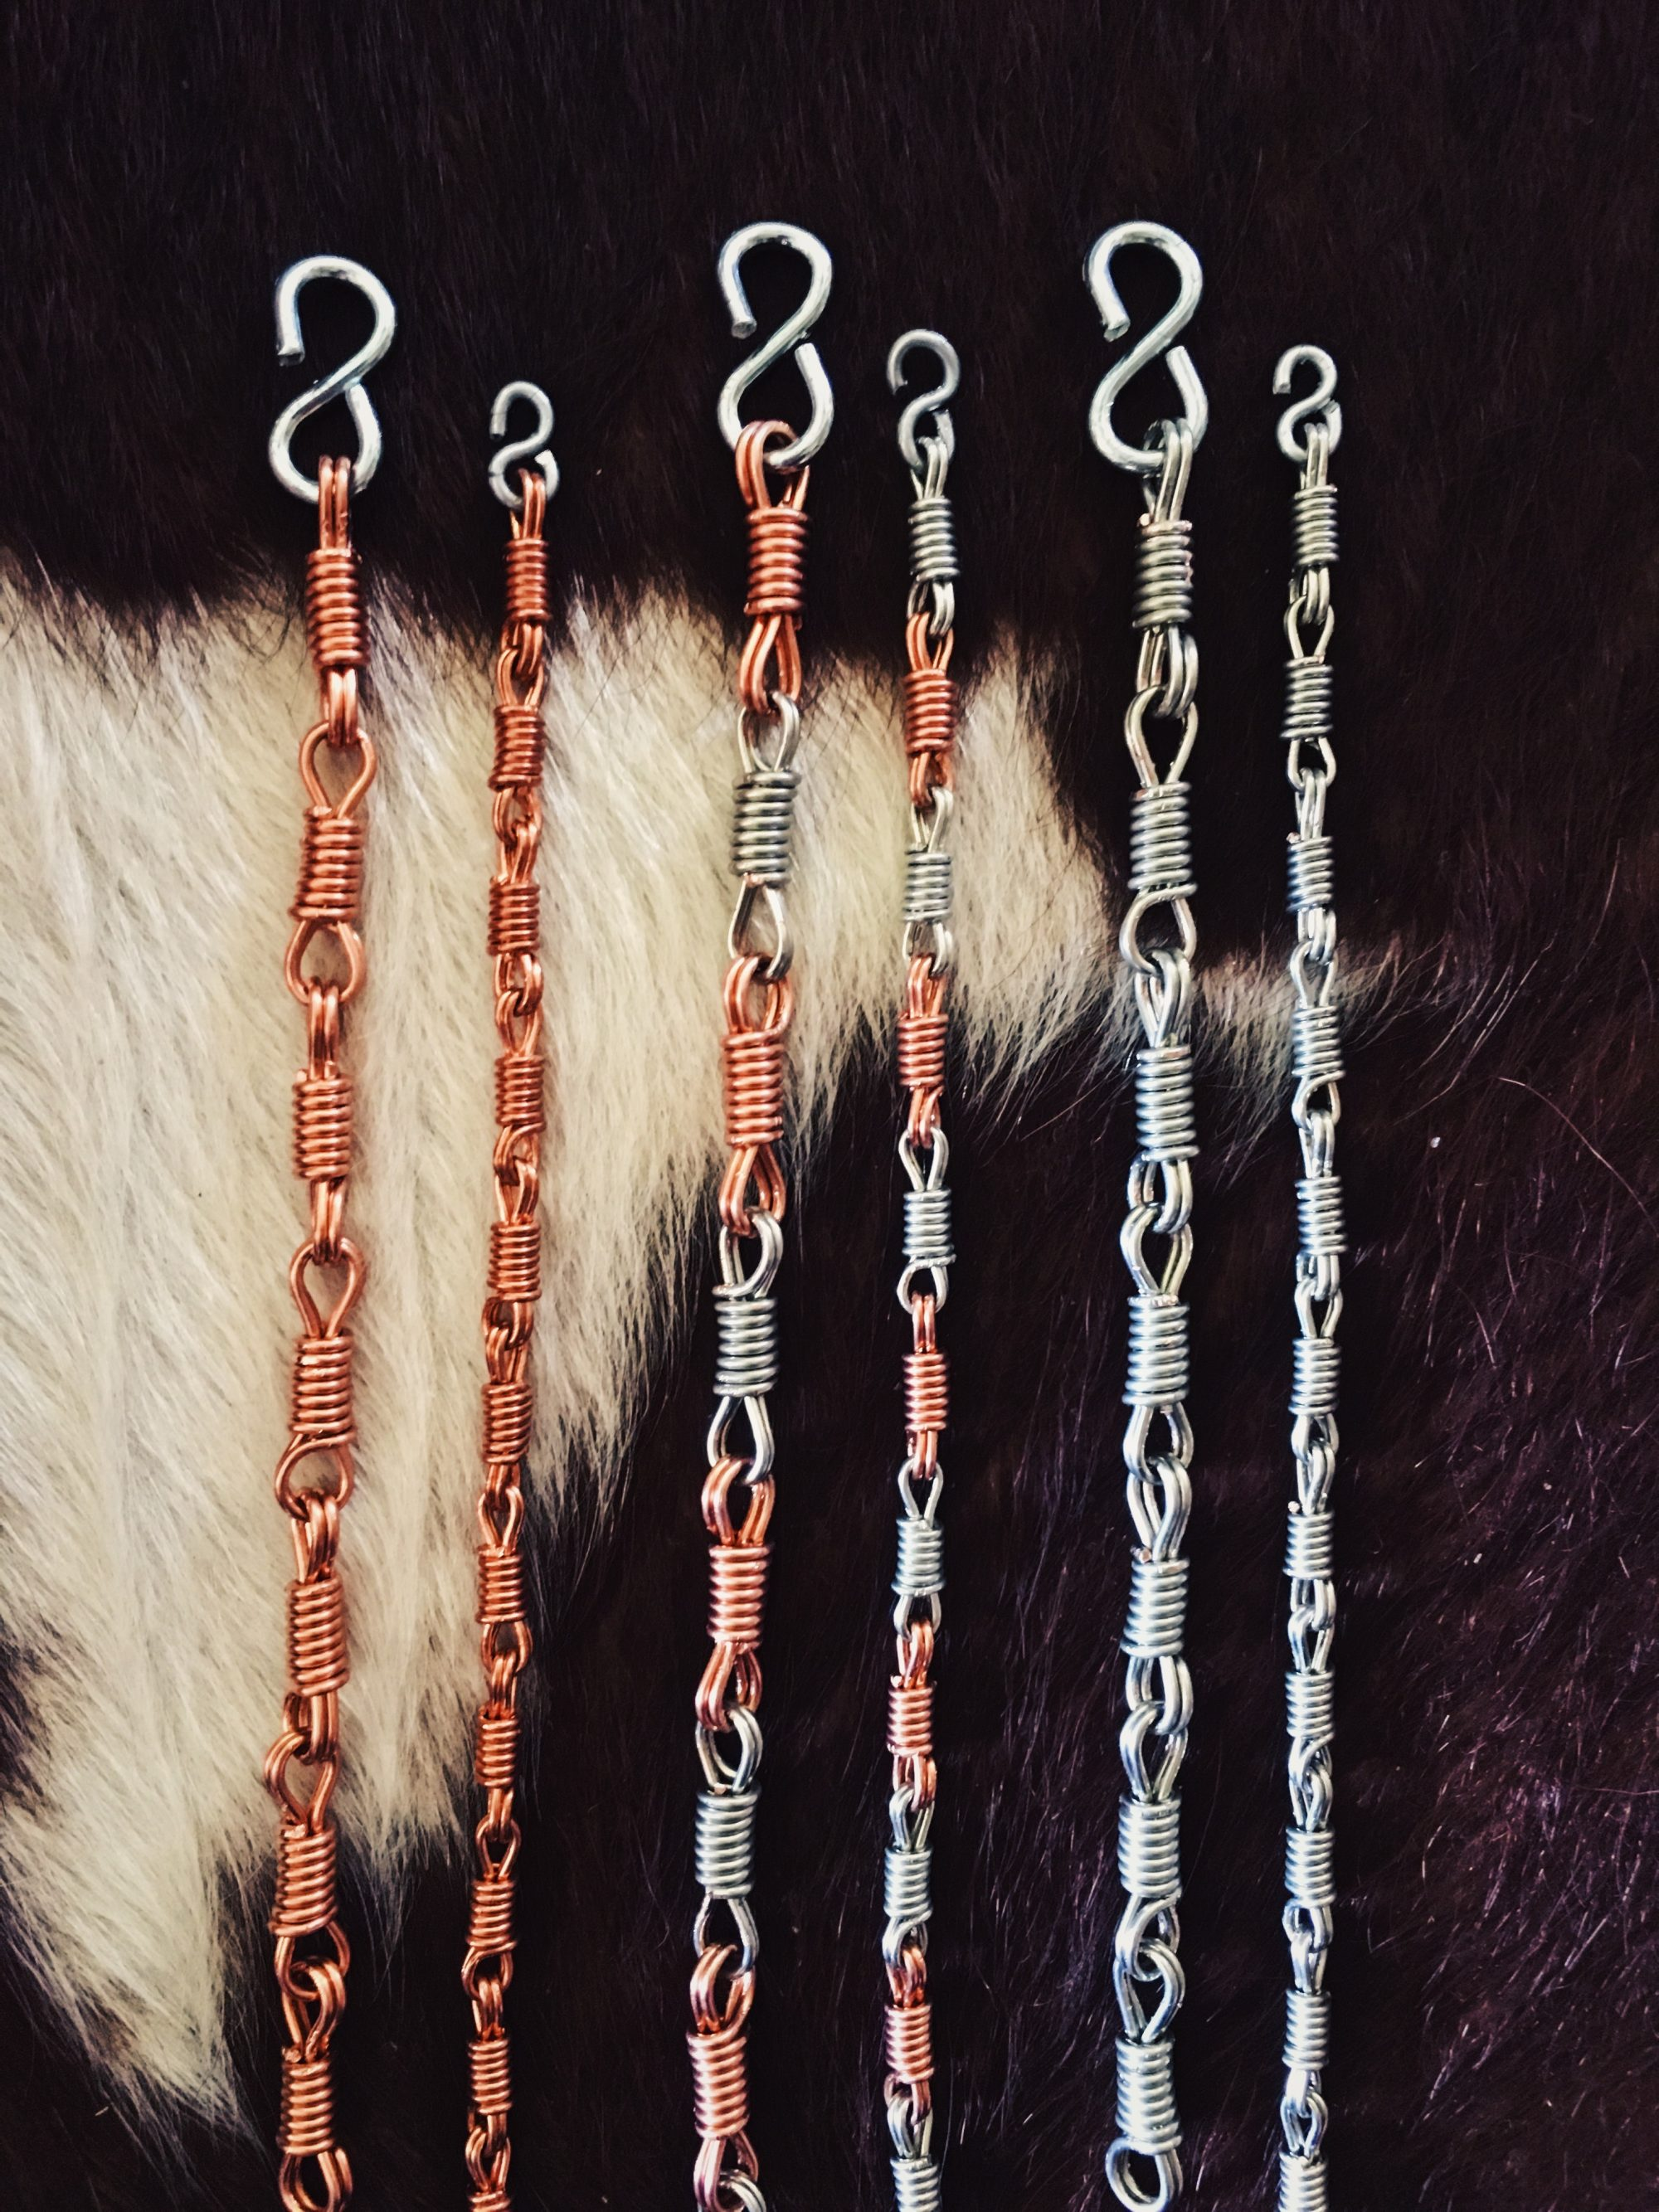 Ceily Rae Photography & Design Products Copper Rein Chain Bracelets